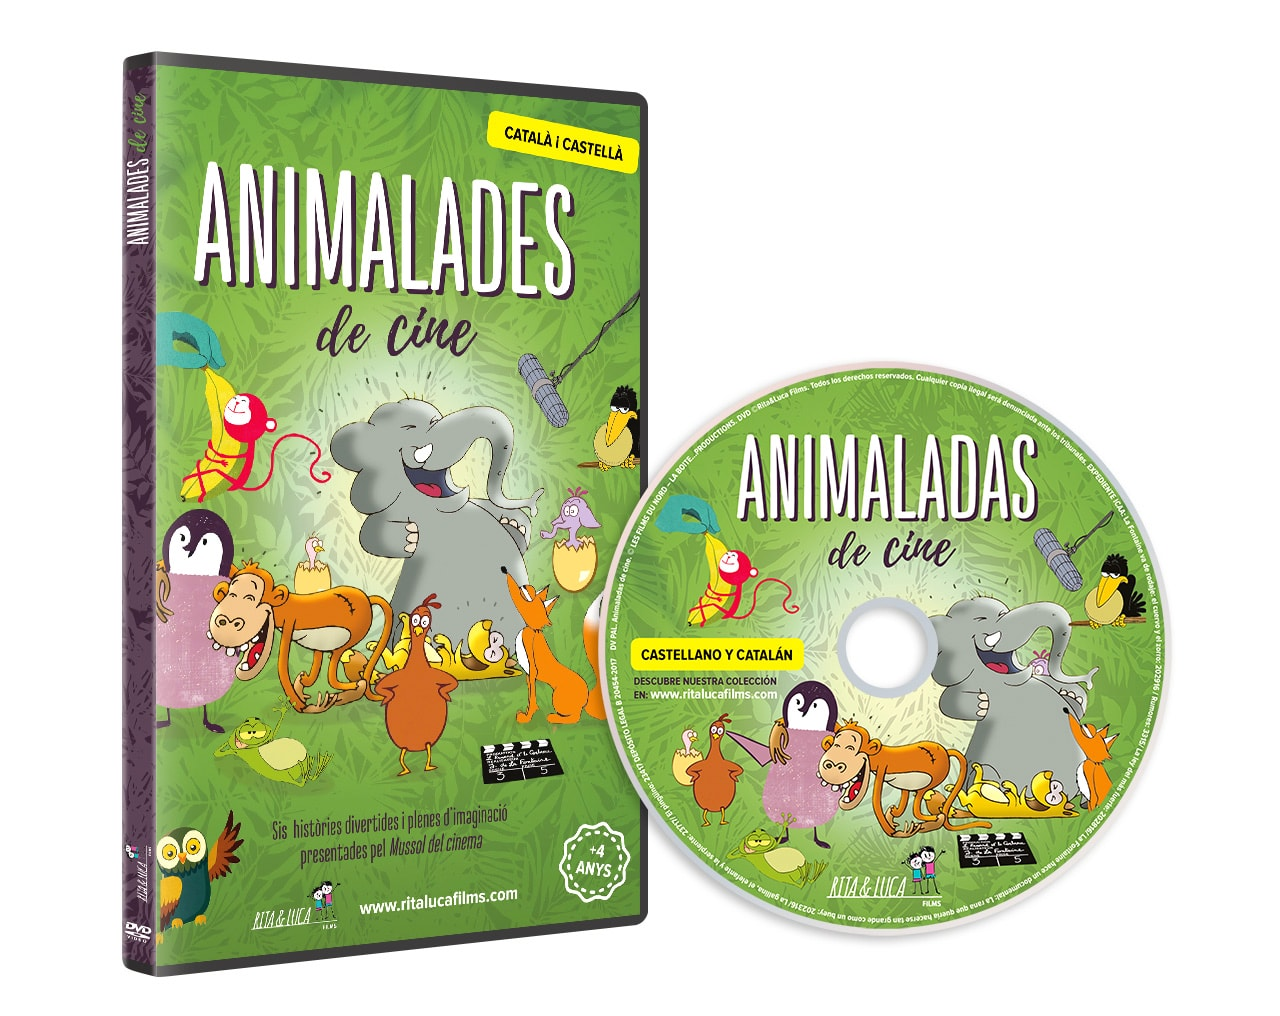 animalades-cat-cast-web